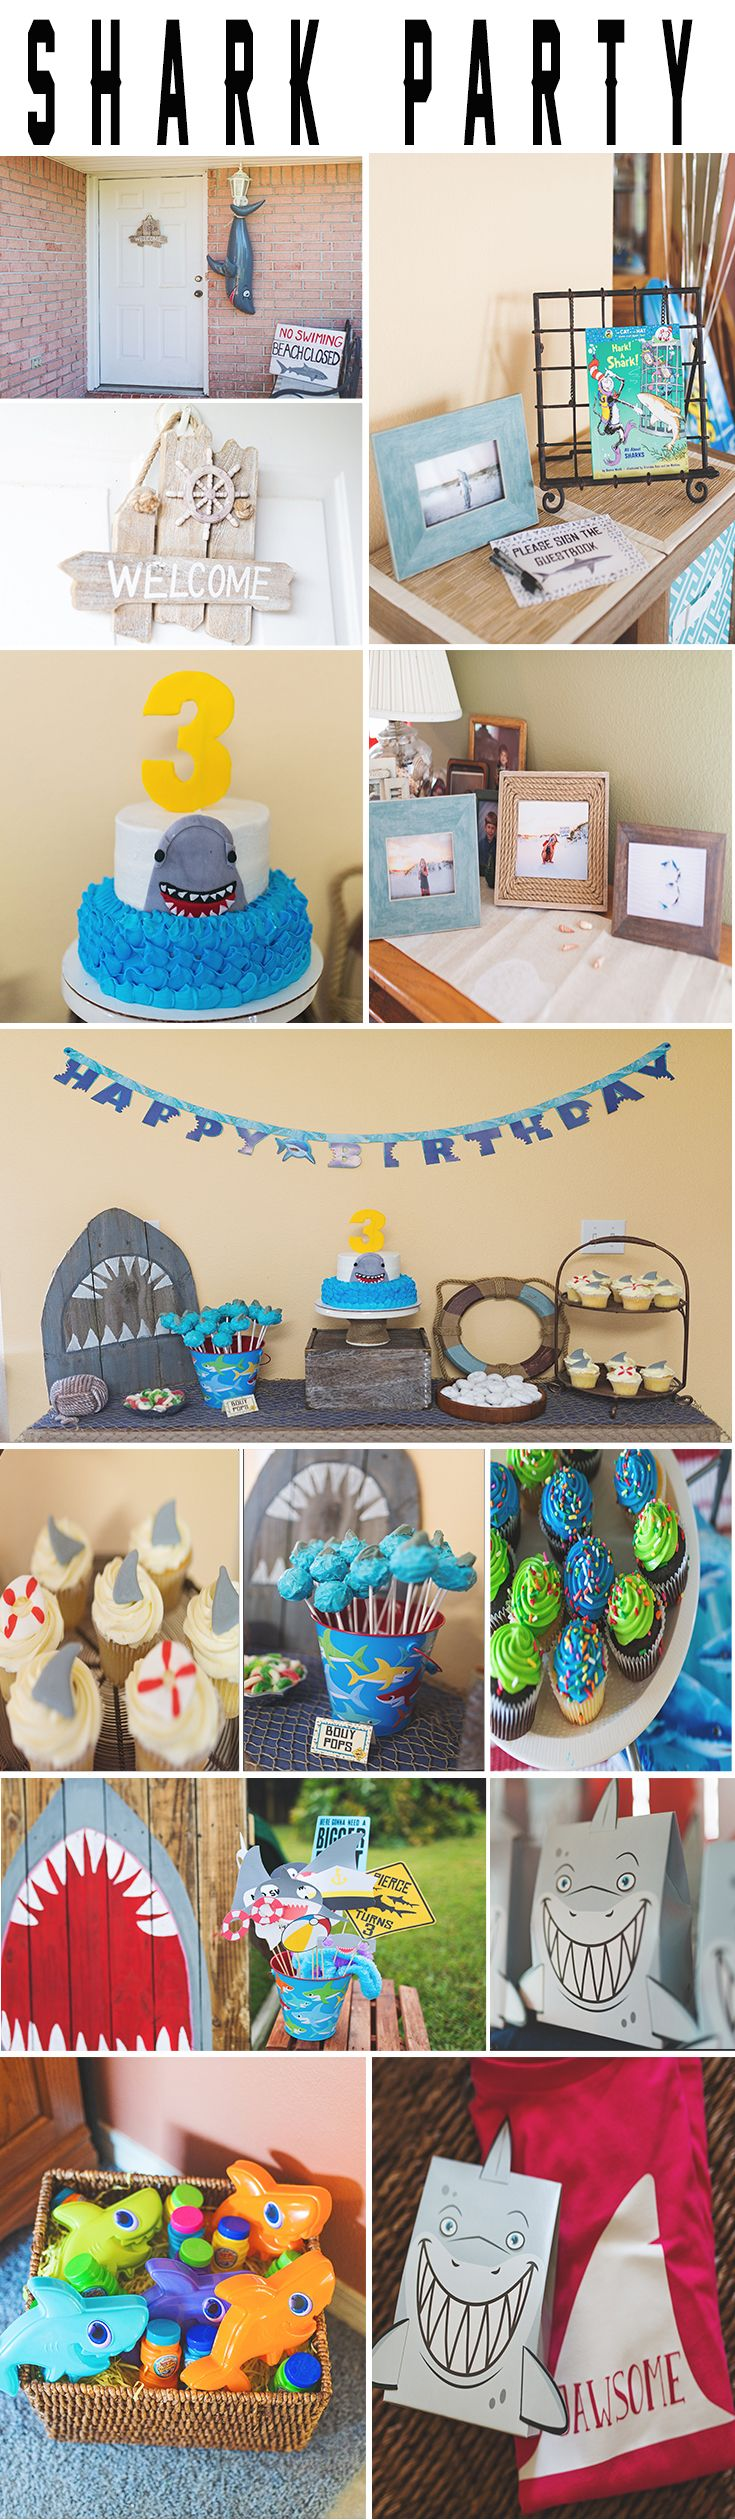 Shark birthday Party ideas, shark cake, shake cake pops, shark fin cupcakes, painted shark mouth Photo Booth, shark photo props, shark goodie bags, shark book guestbook. personalized shark t-shirts